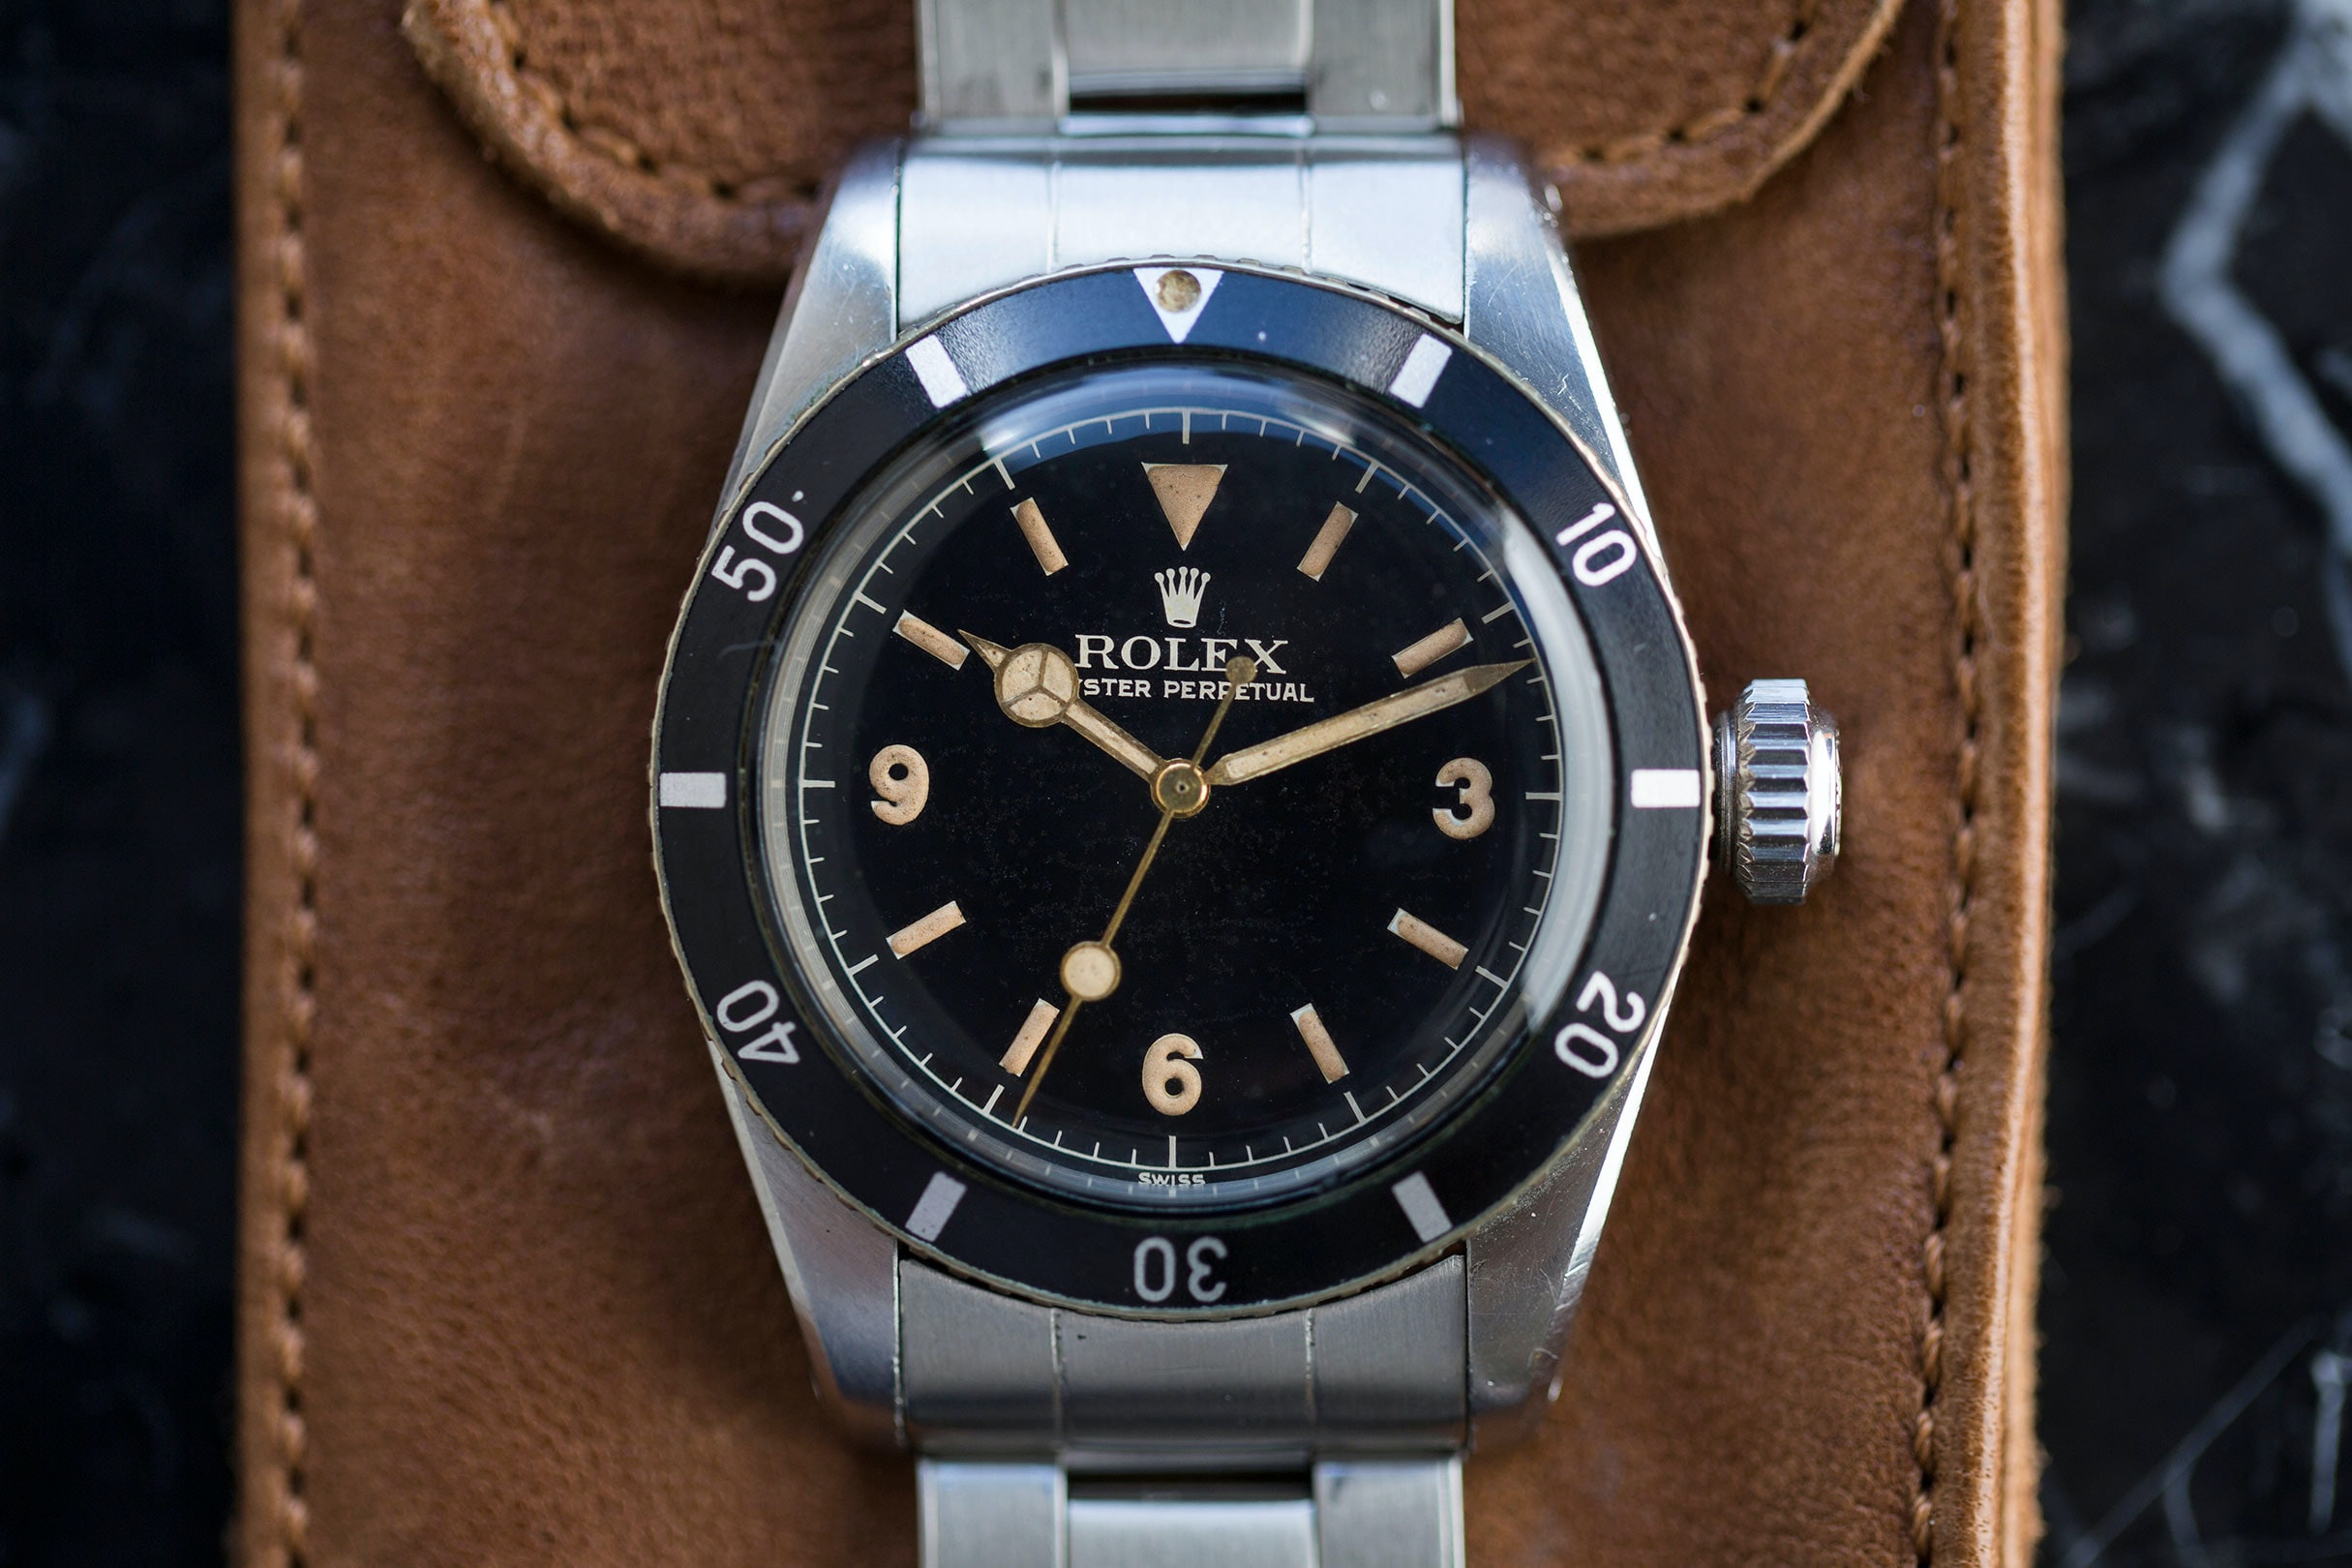 Rolex Reference 6200 Editorial: Price, Value, And The Strange Case Of The Nine Million Dollar Postage Stamp